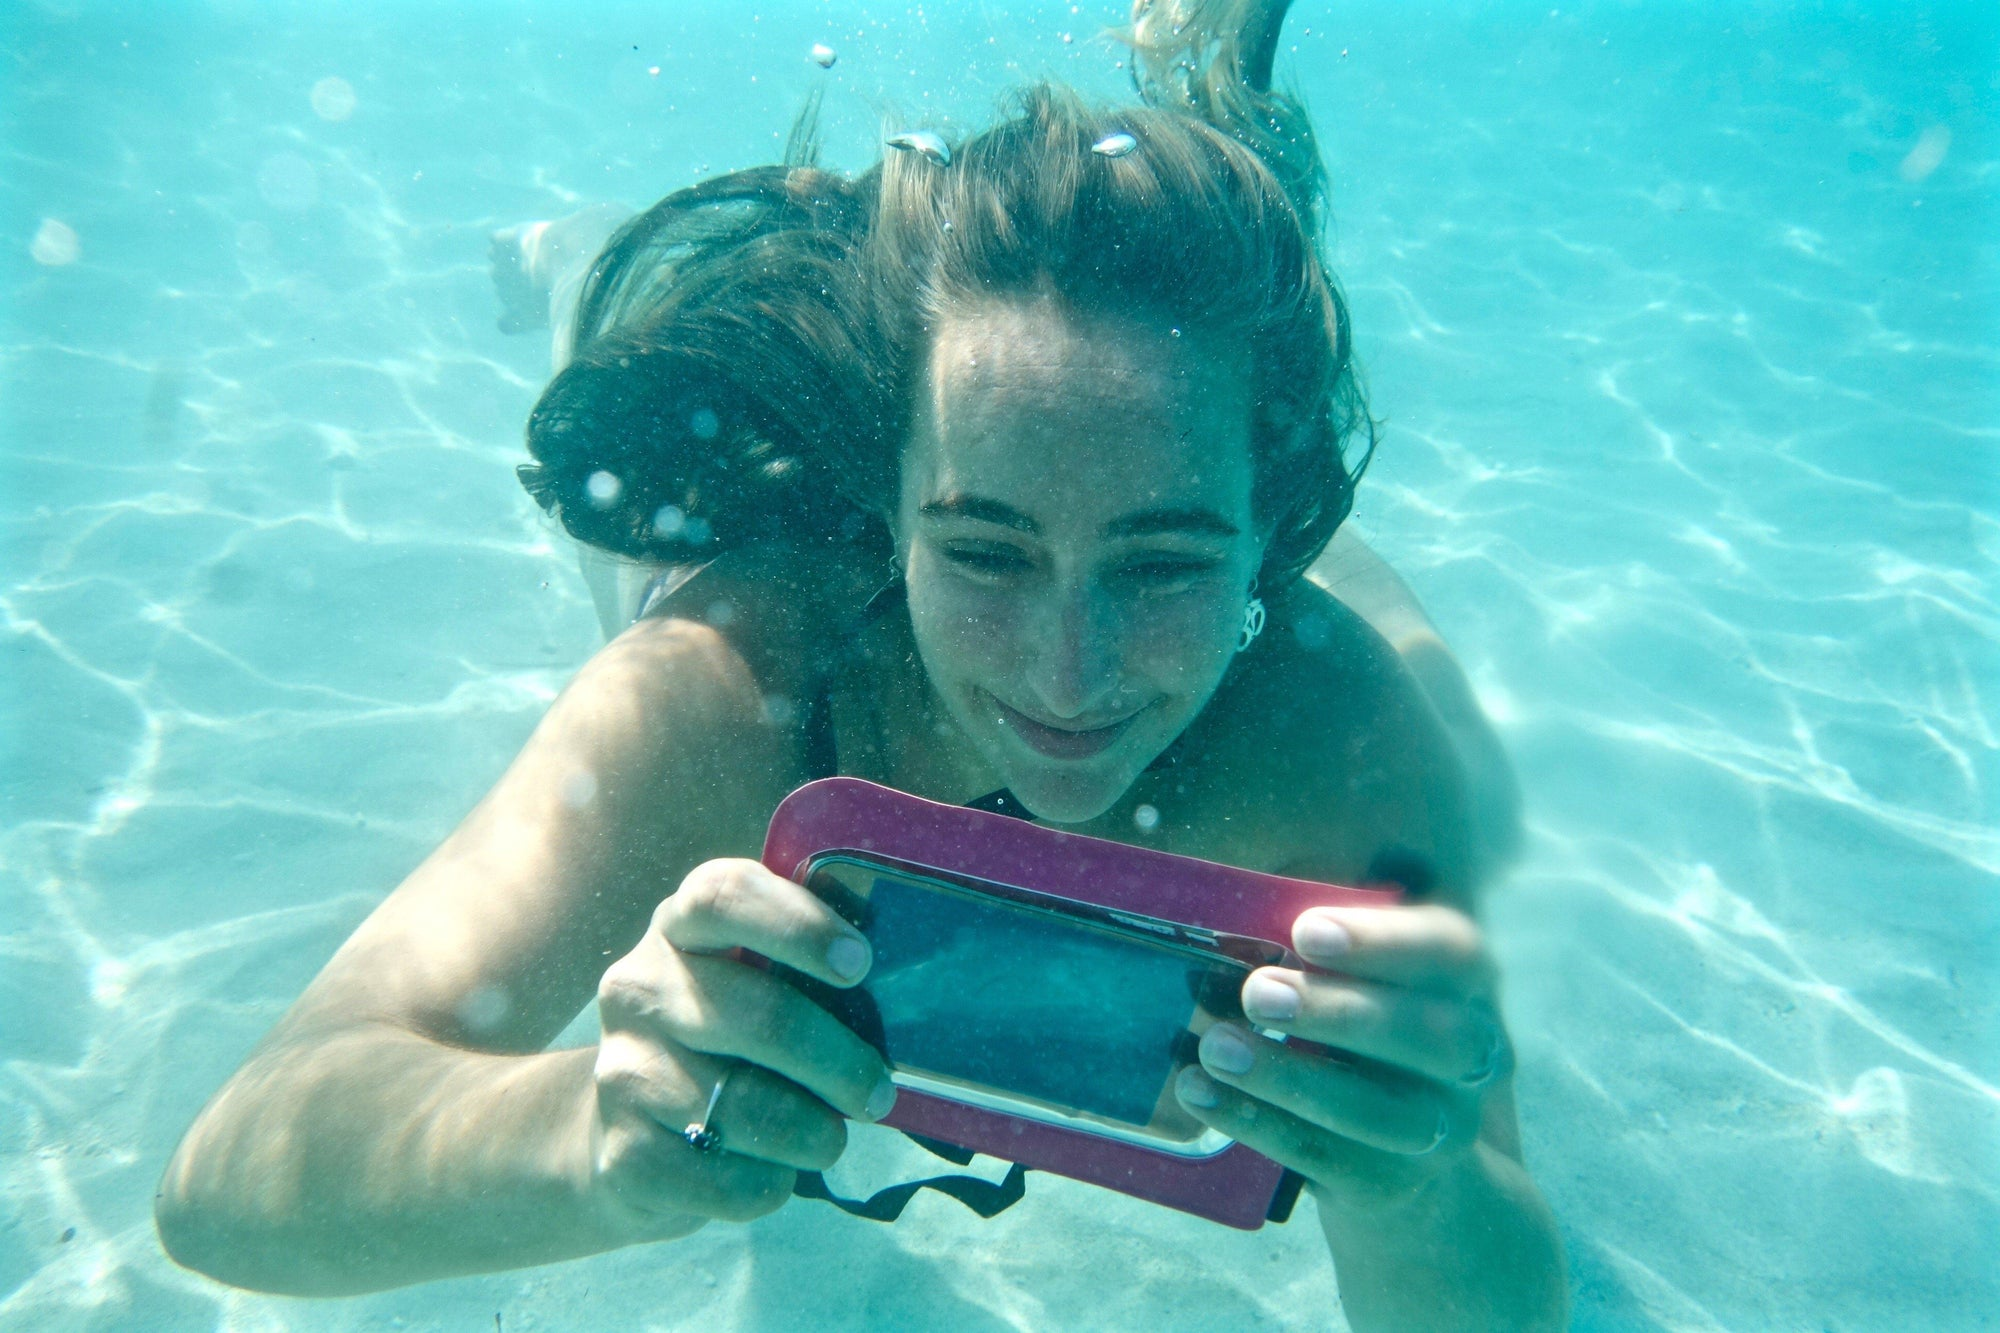 Phone Lost for 10 Days Underwater Found Undamged